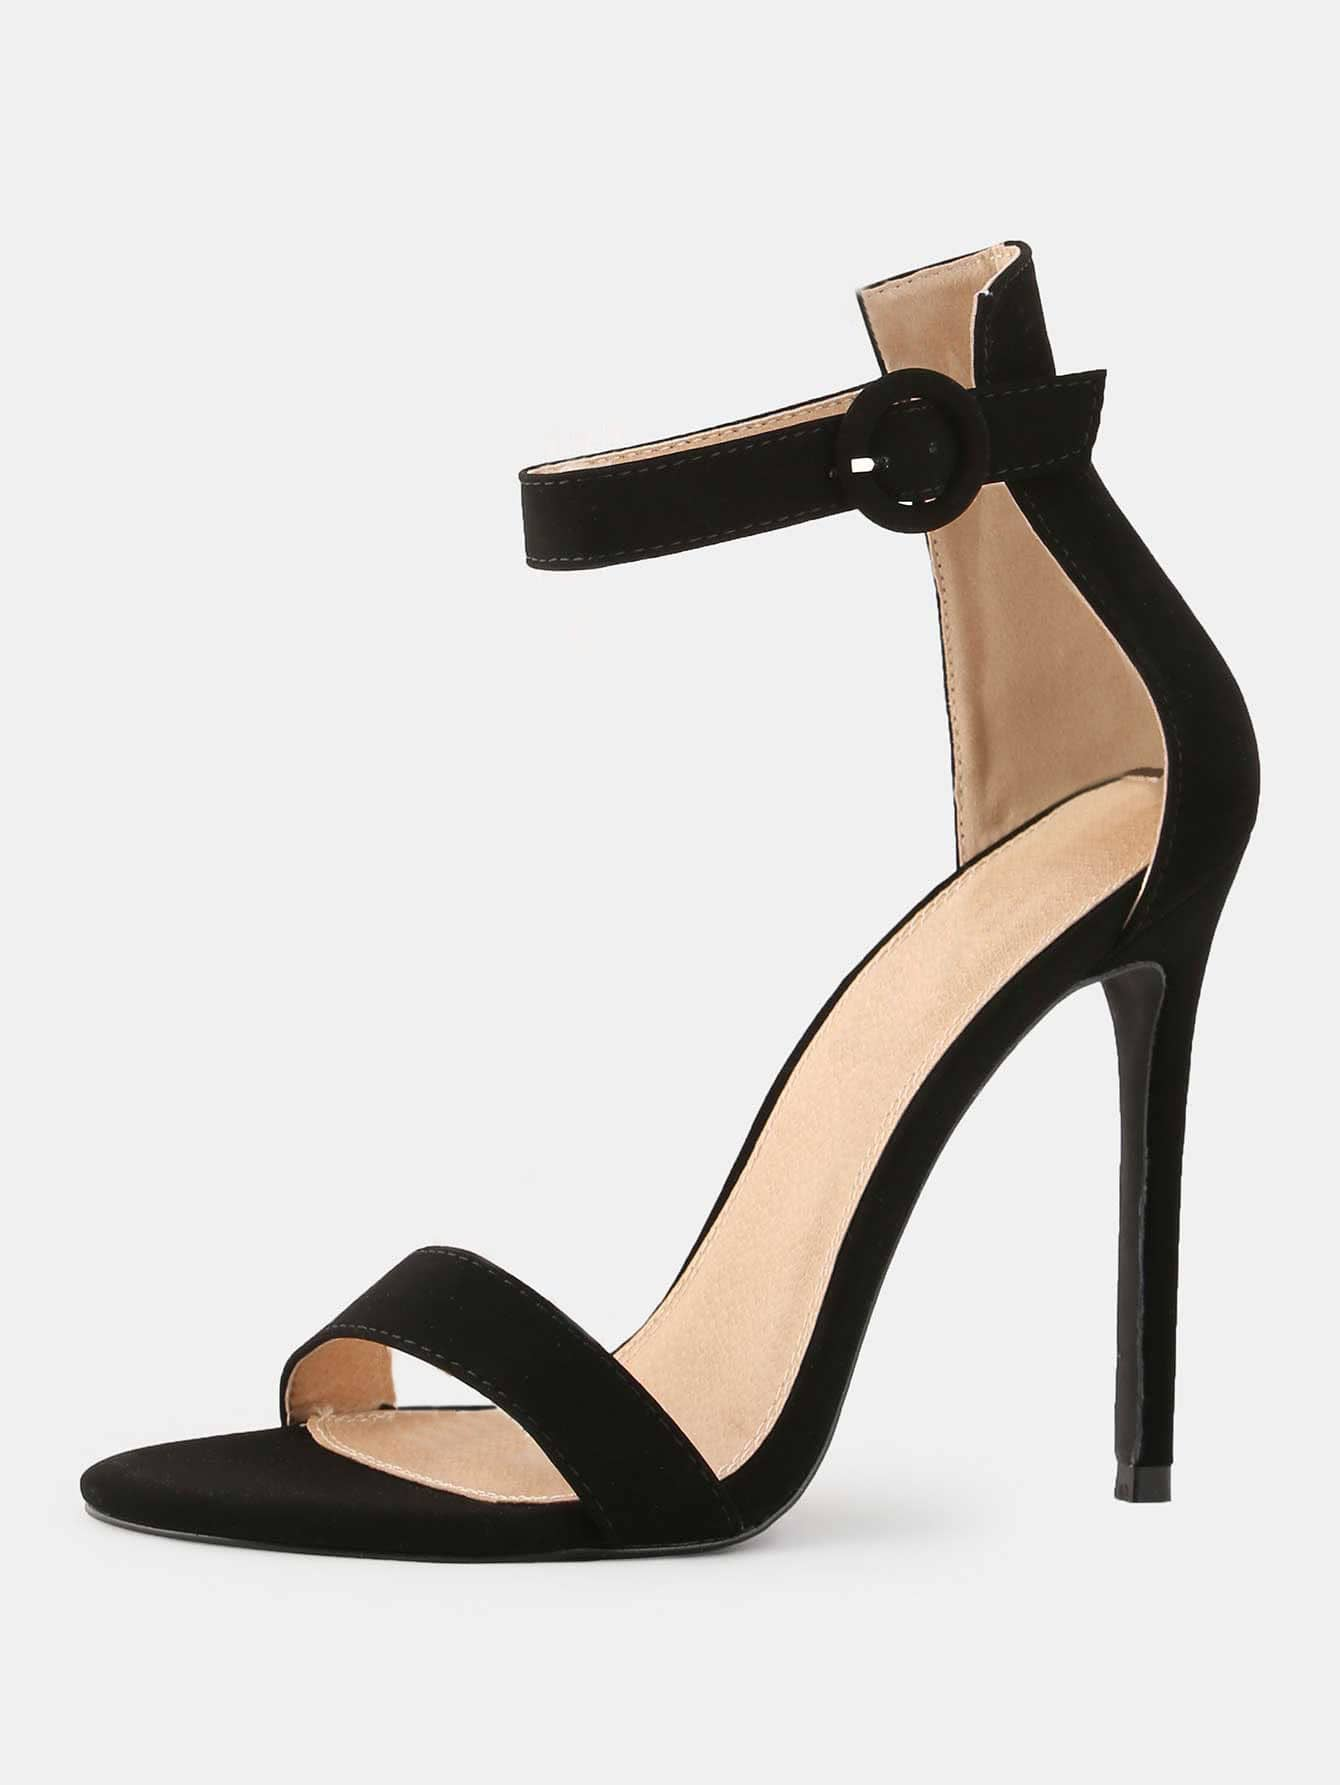 Stiletto Open Toe High Heels BLACK -SheIn(Sheinside)